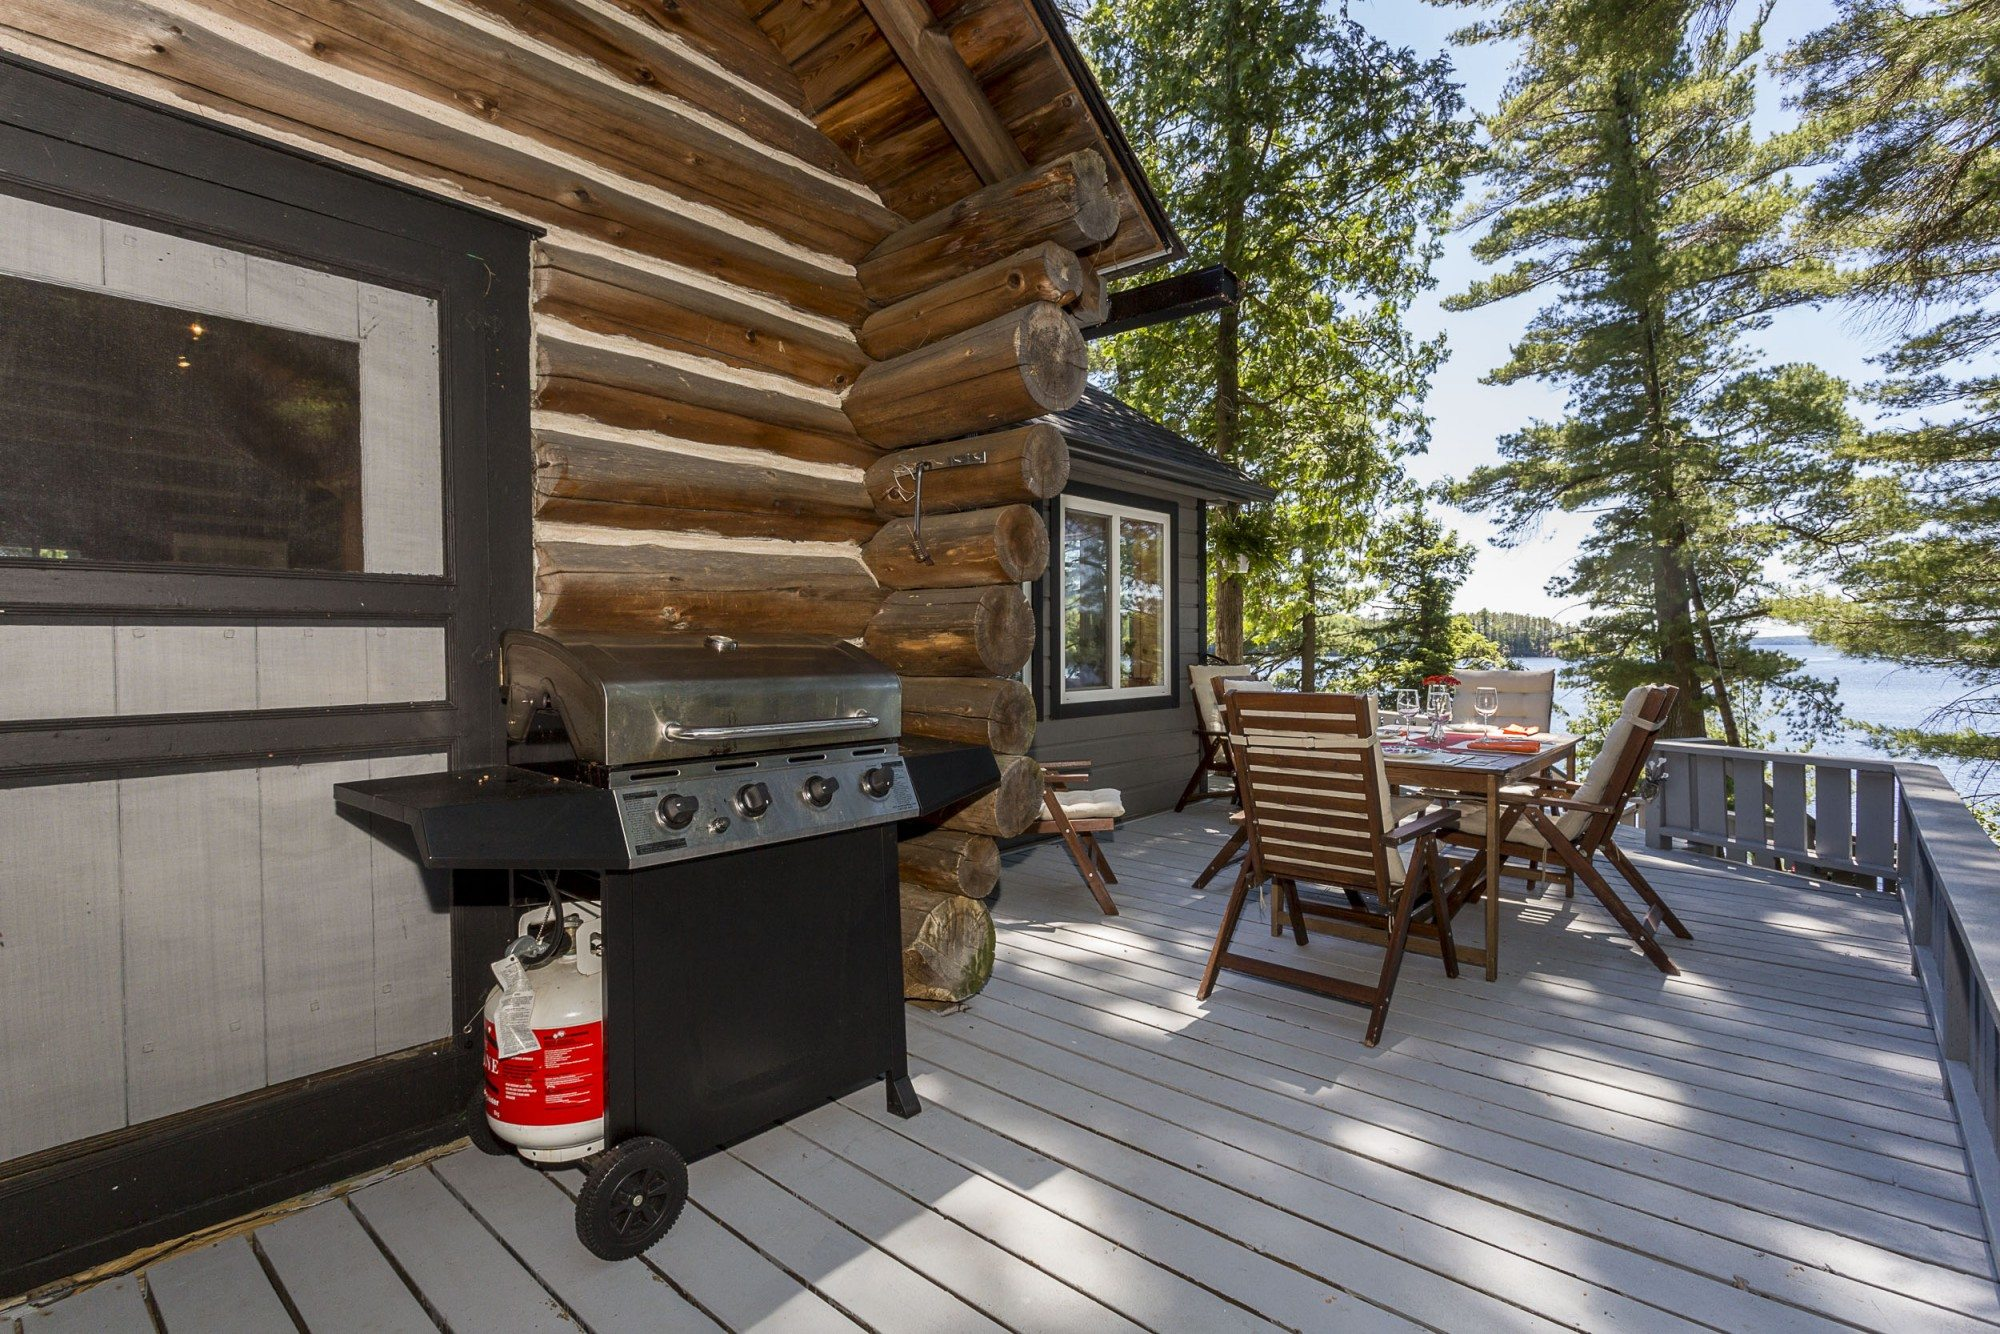 lake-of-bays-cottage-of-the-week-1057-montgomery-bay-road.9